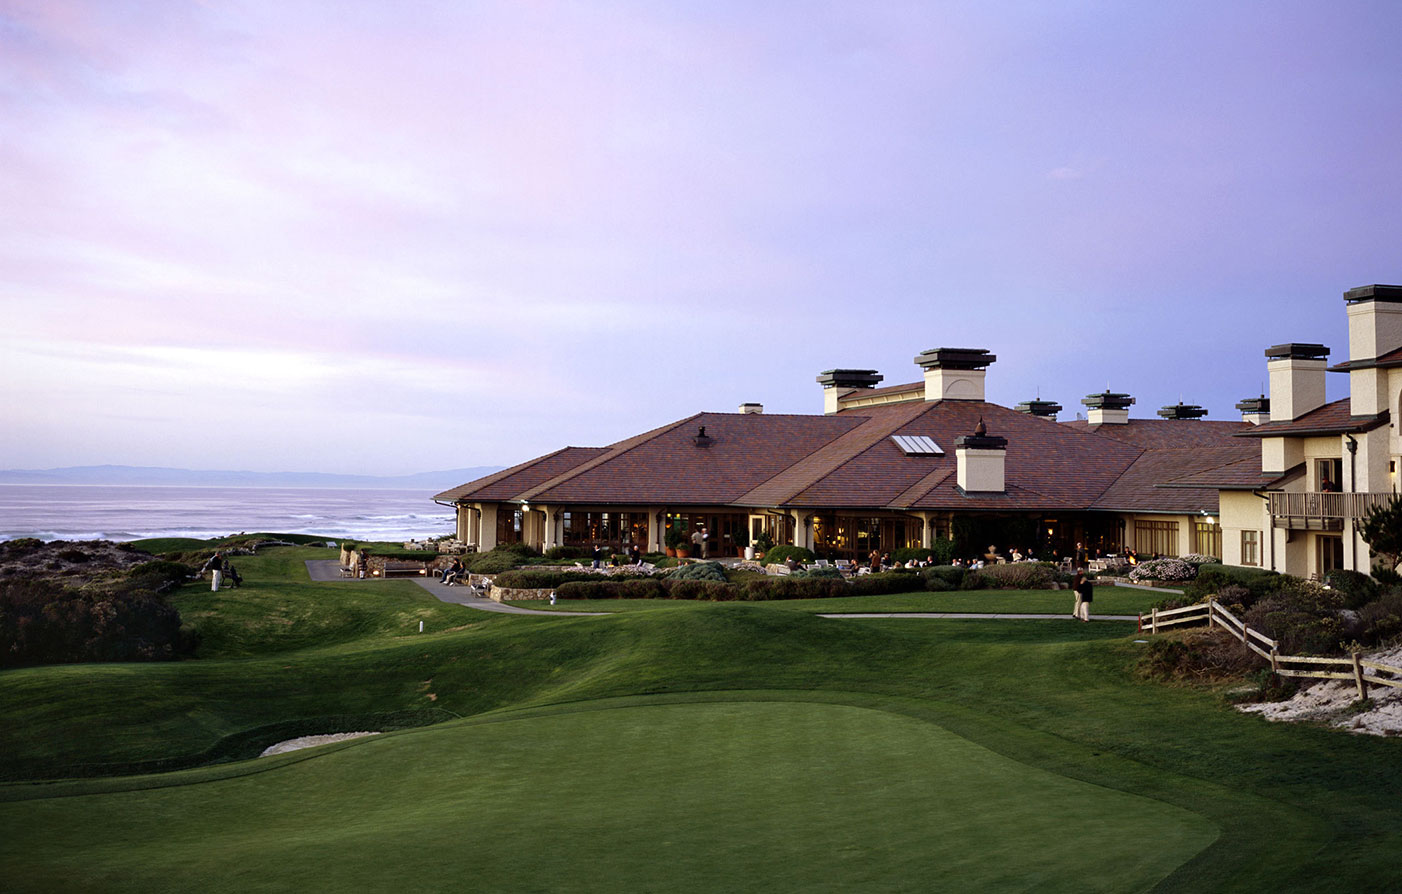 Activities:      The Lodge at Pebble Beach  in Pebble Beach